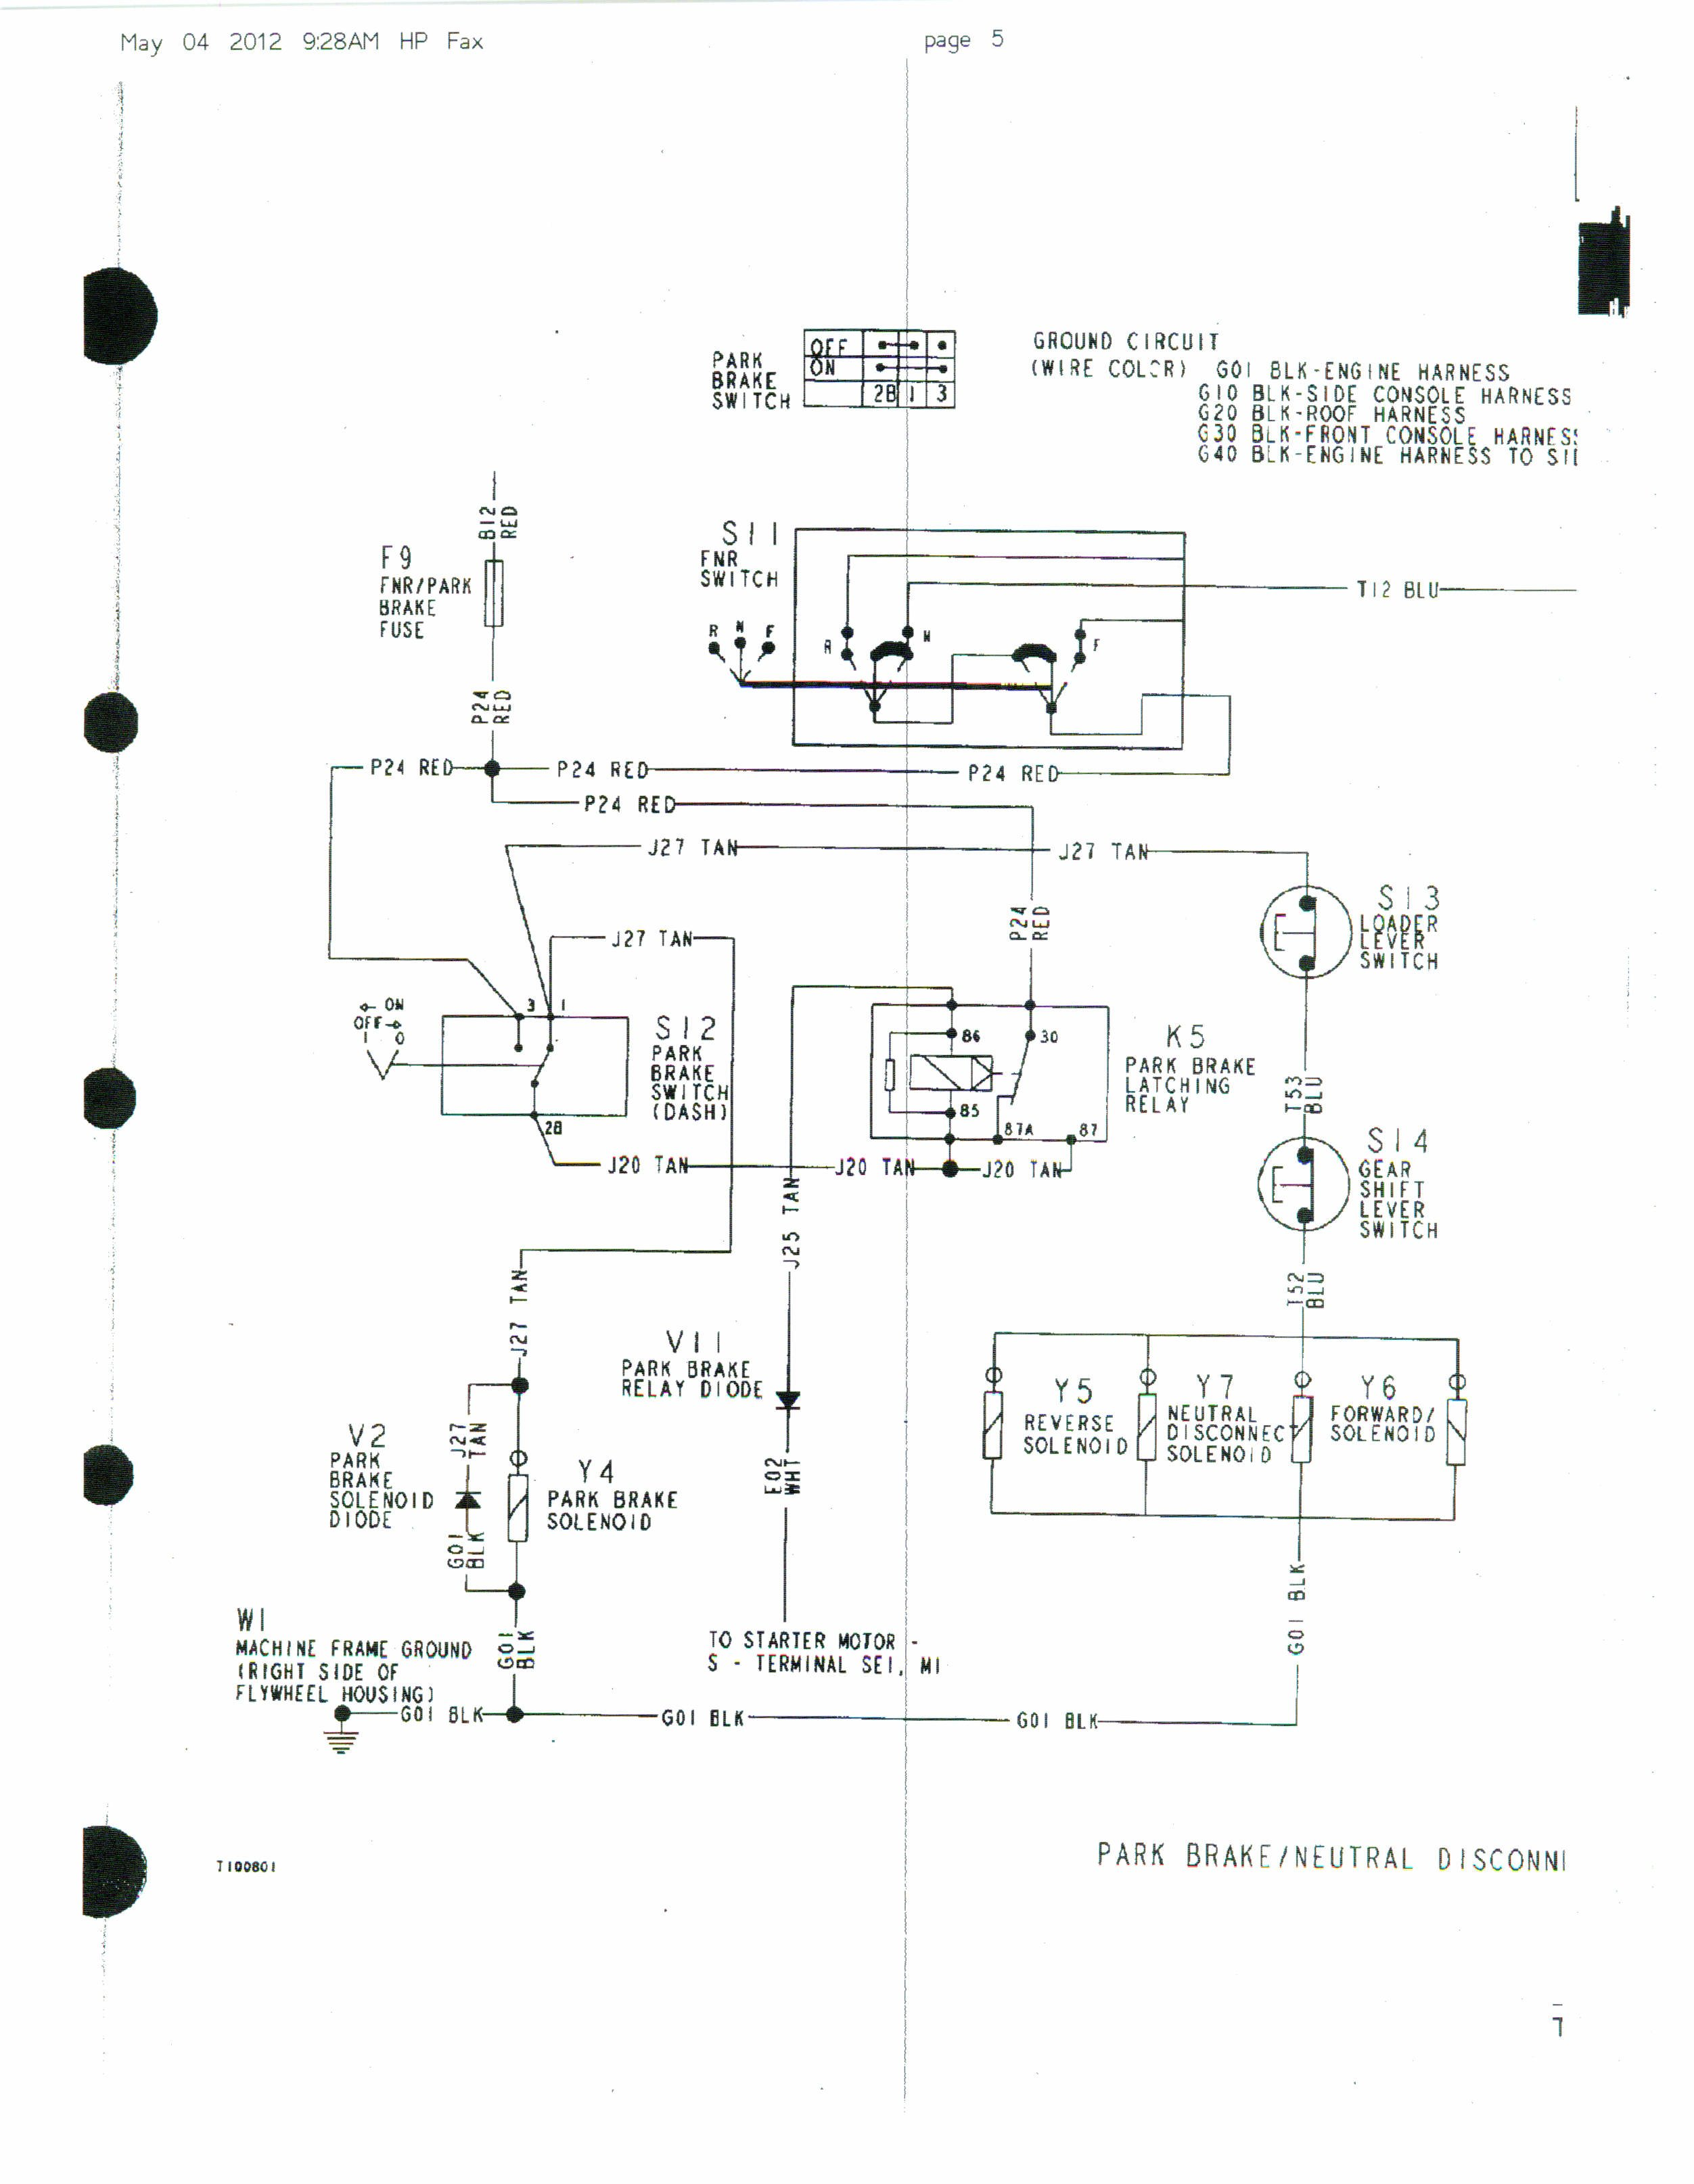 Jd 7520 Wiring Diagram Trusted Diagrams John Deere Backhoe 310e U2022 Loader